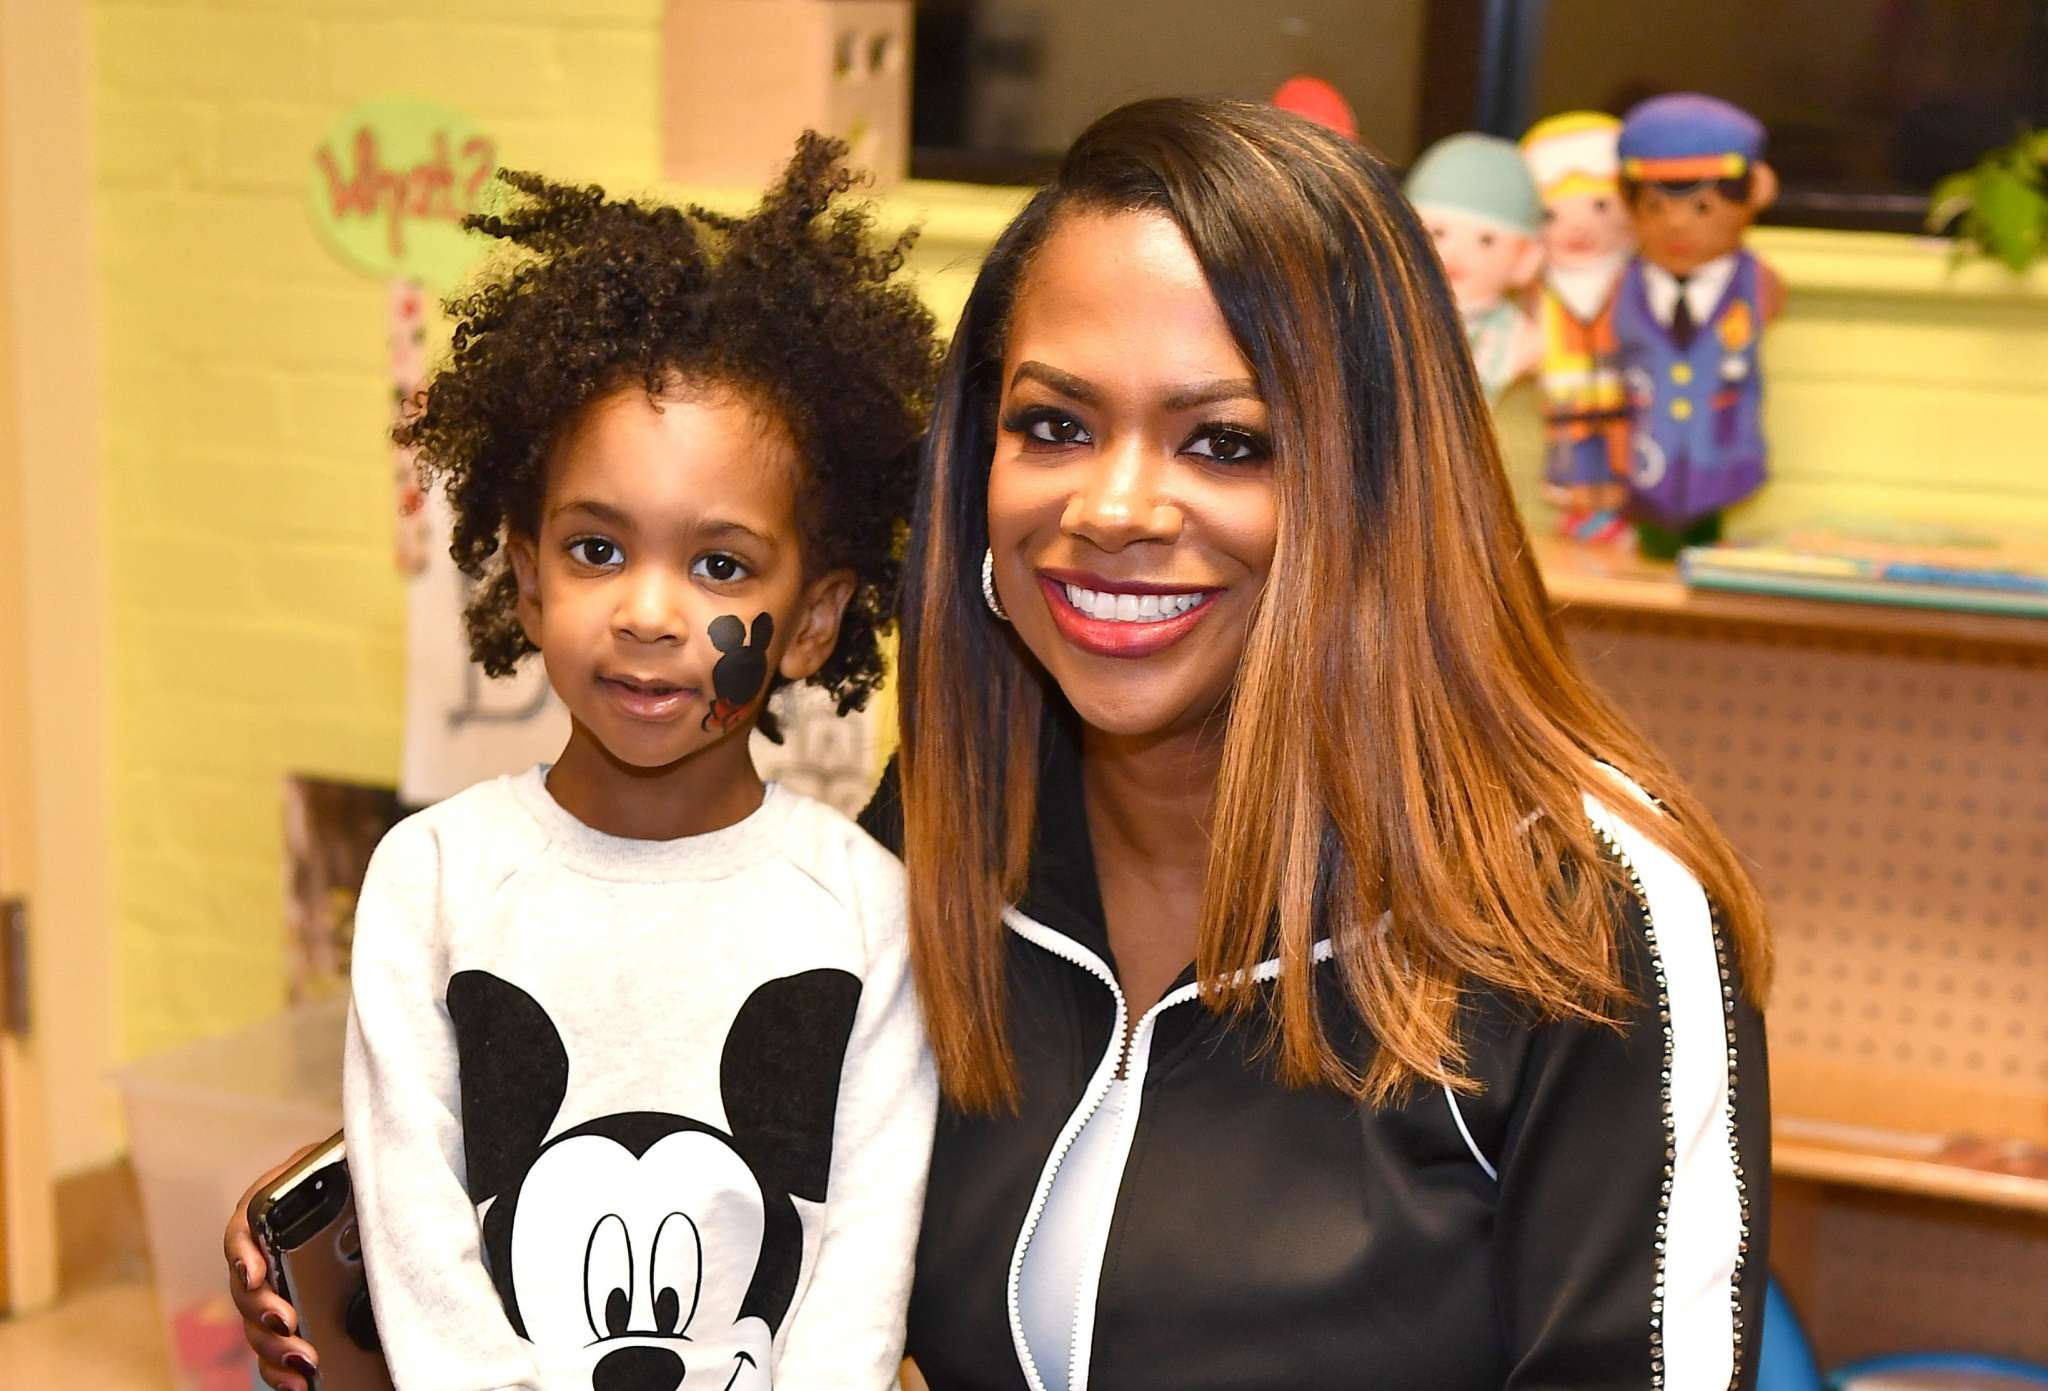 kandi-burruss-and-todd-tucker-have-the-most-talented-son-check-out-ace-wells-tuckers-latest-achievement-in-this-video